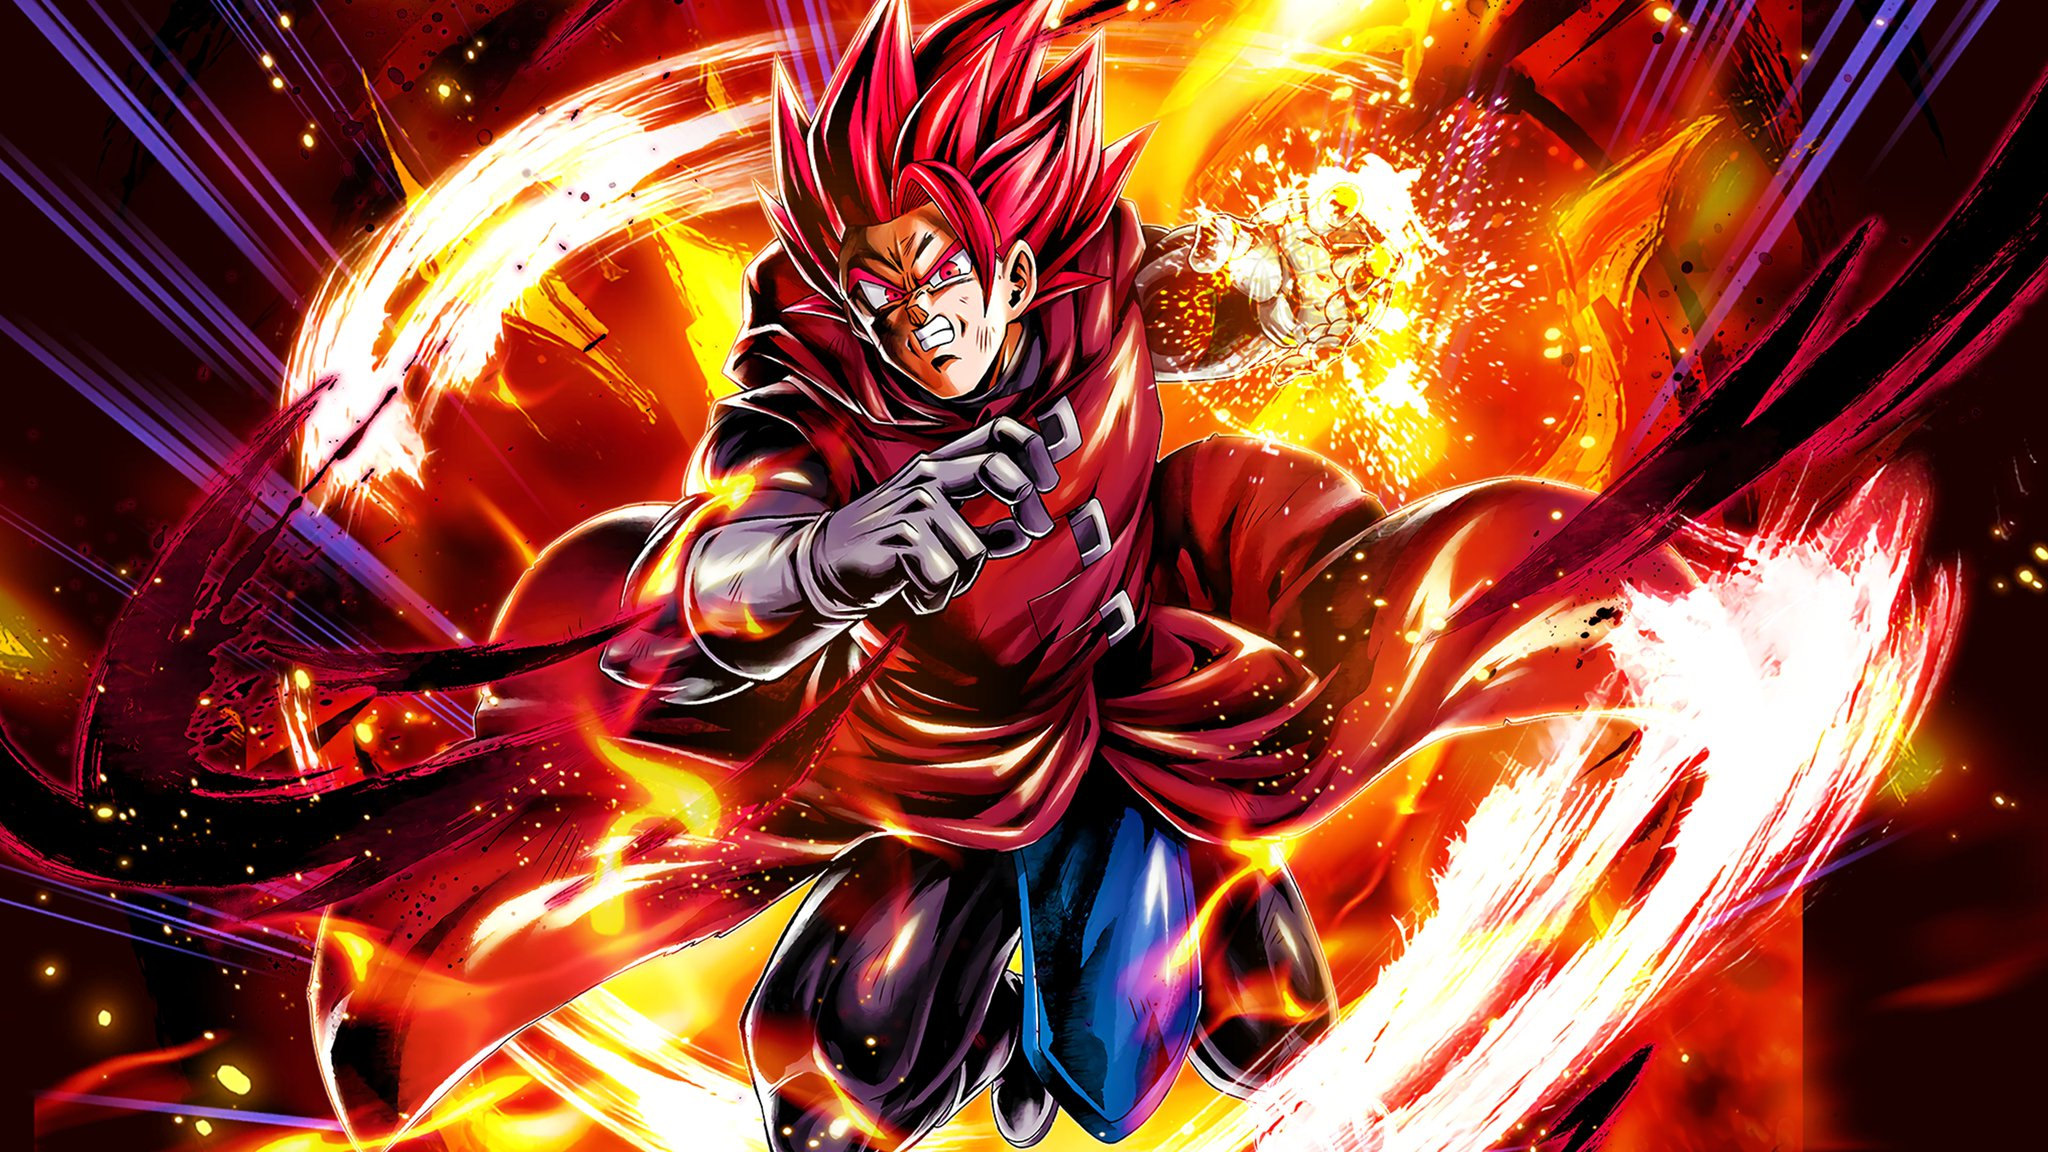 Hydros On Twitter Super Saiyan God Giblet Character Art Hd Yes I Used Shallots To Kinda Make It An Alt To Shallot 4k Pc Wallpaper And 4k Phone Wallpaper Dblegends Dragonballlegends